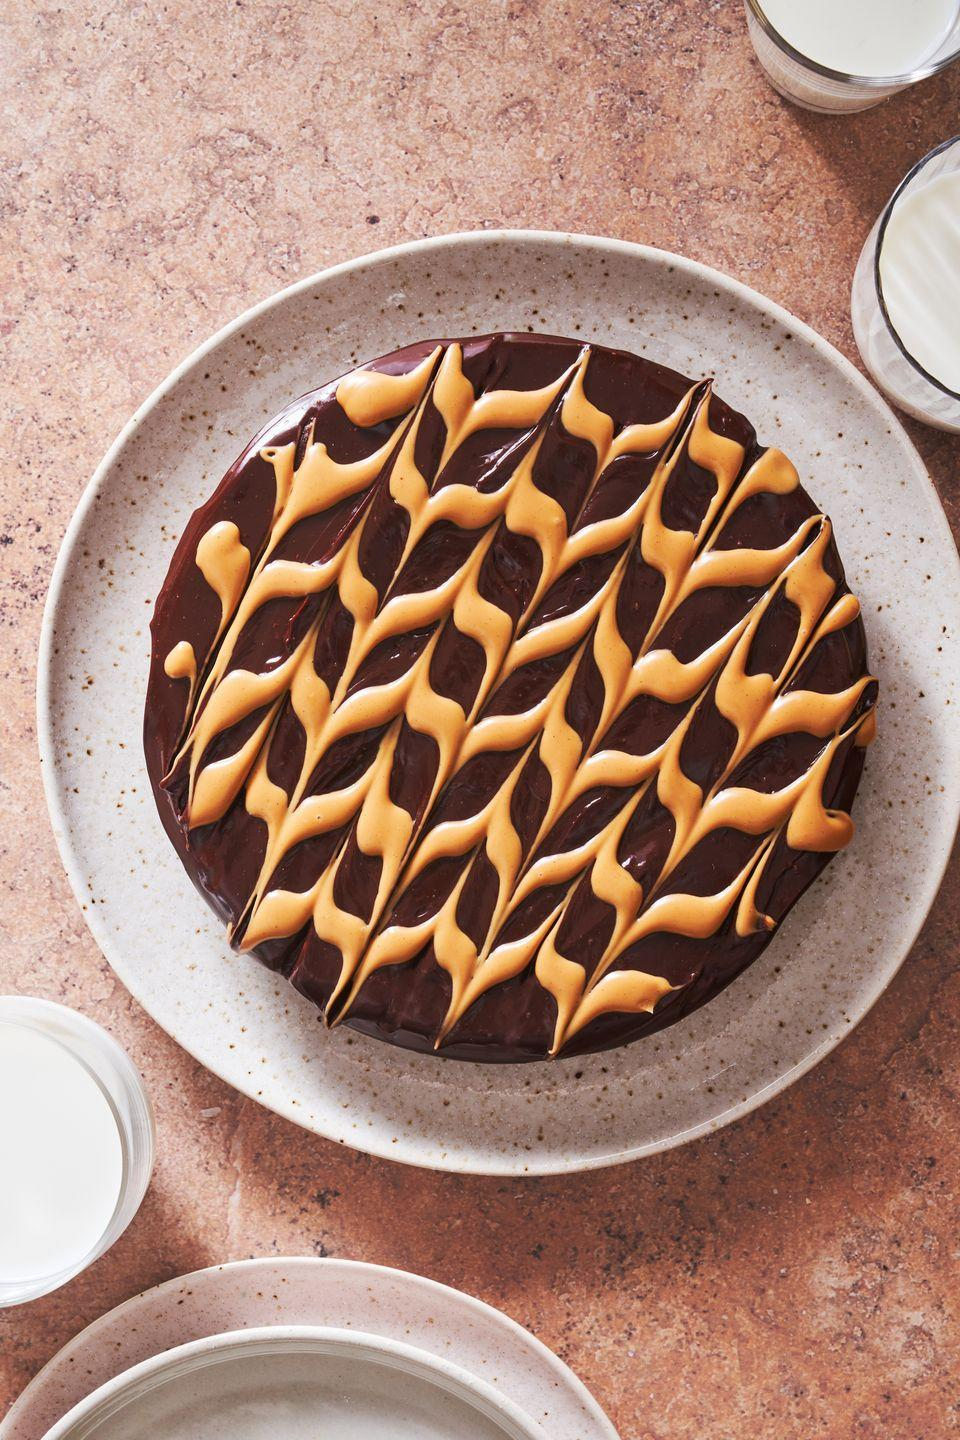 """<p>Trust us, heads will turn.</p><p>Get the recipe from <a href=""""https://www.delish.com/cooking/recipe-ideas/a36339267/flourless-peanut-butter-chocolate-cake-recipe/"""" rel=""""nofollow noopener"""" target=""""_blank"""" data-ylk=""""slk:Delish"""" class=""""link rapid-noclick-resp"""">Delish</a>.</p>"""